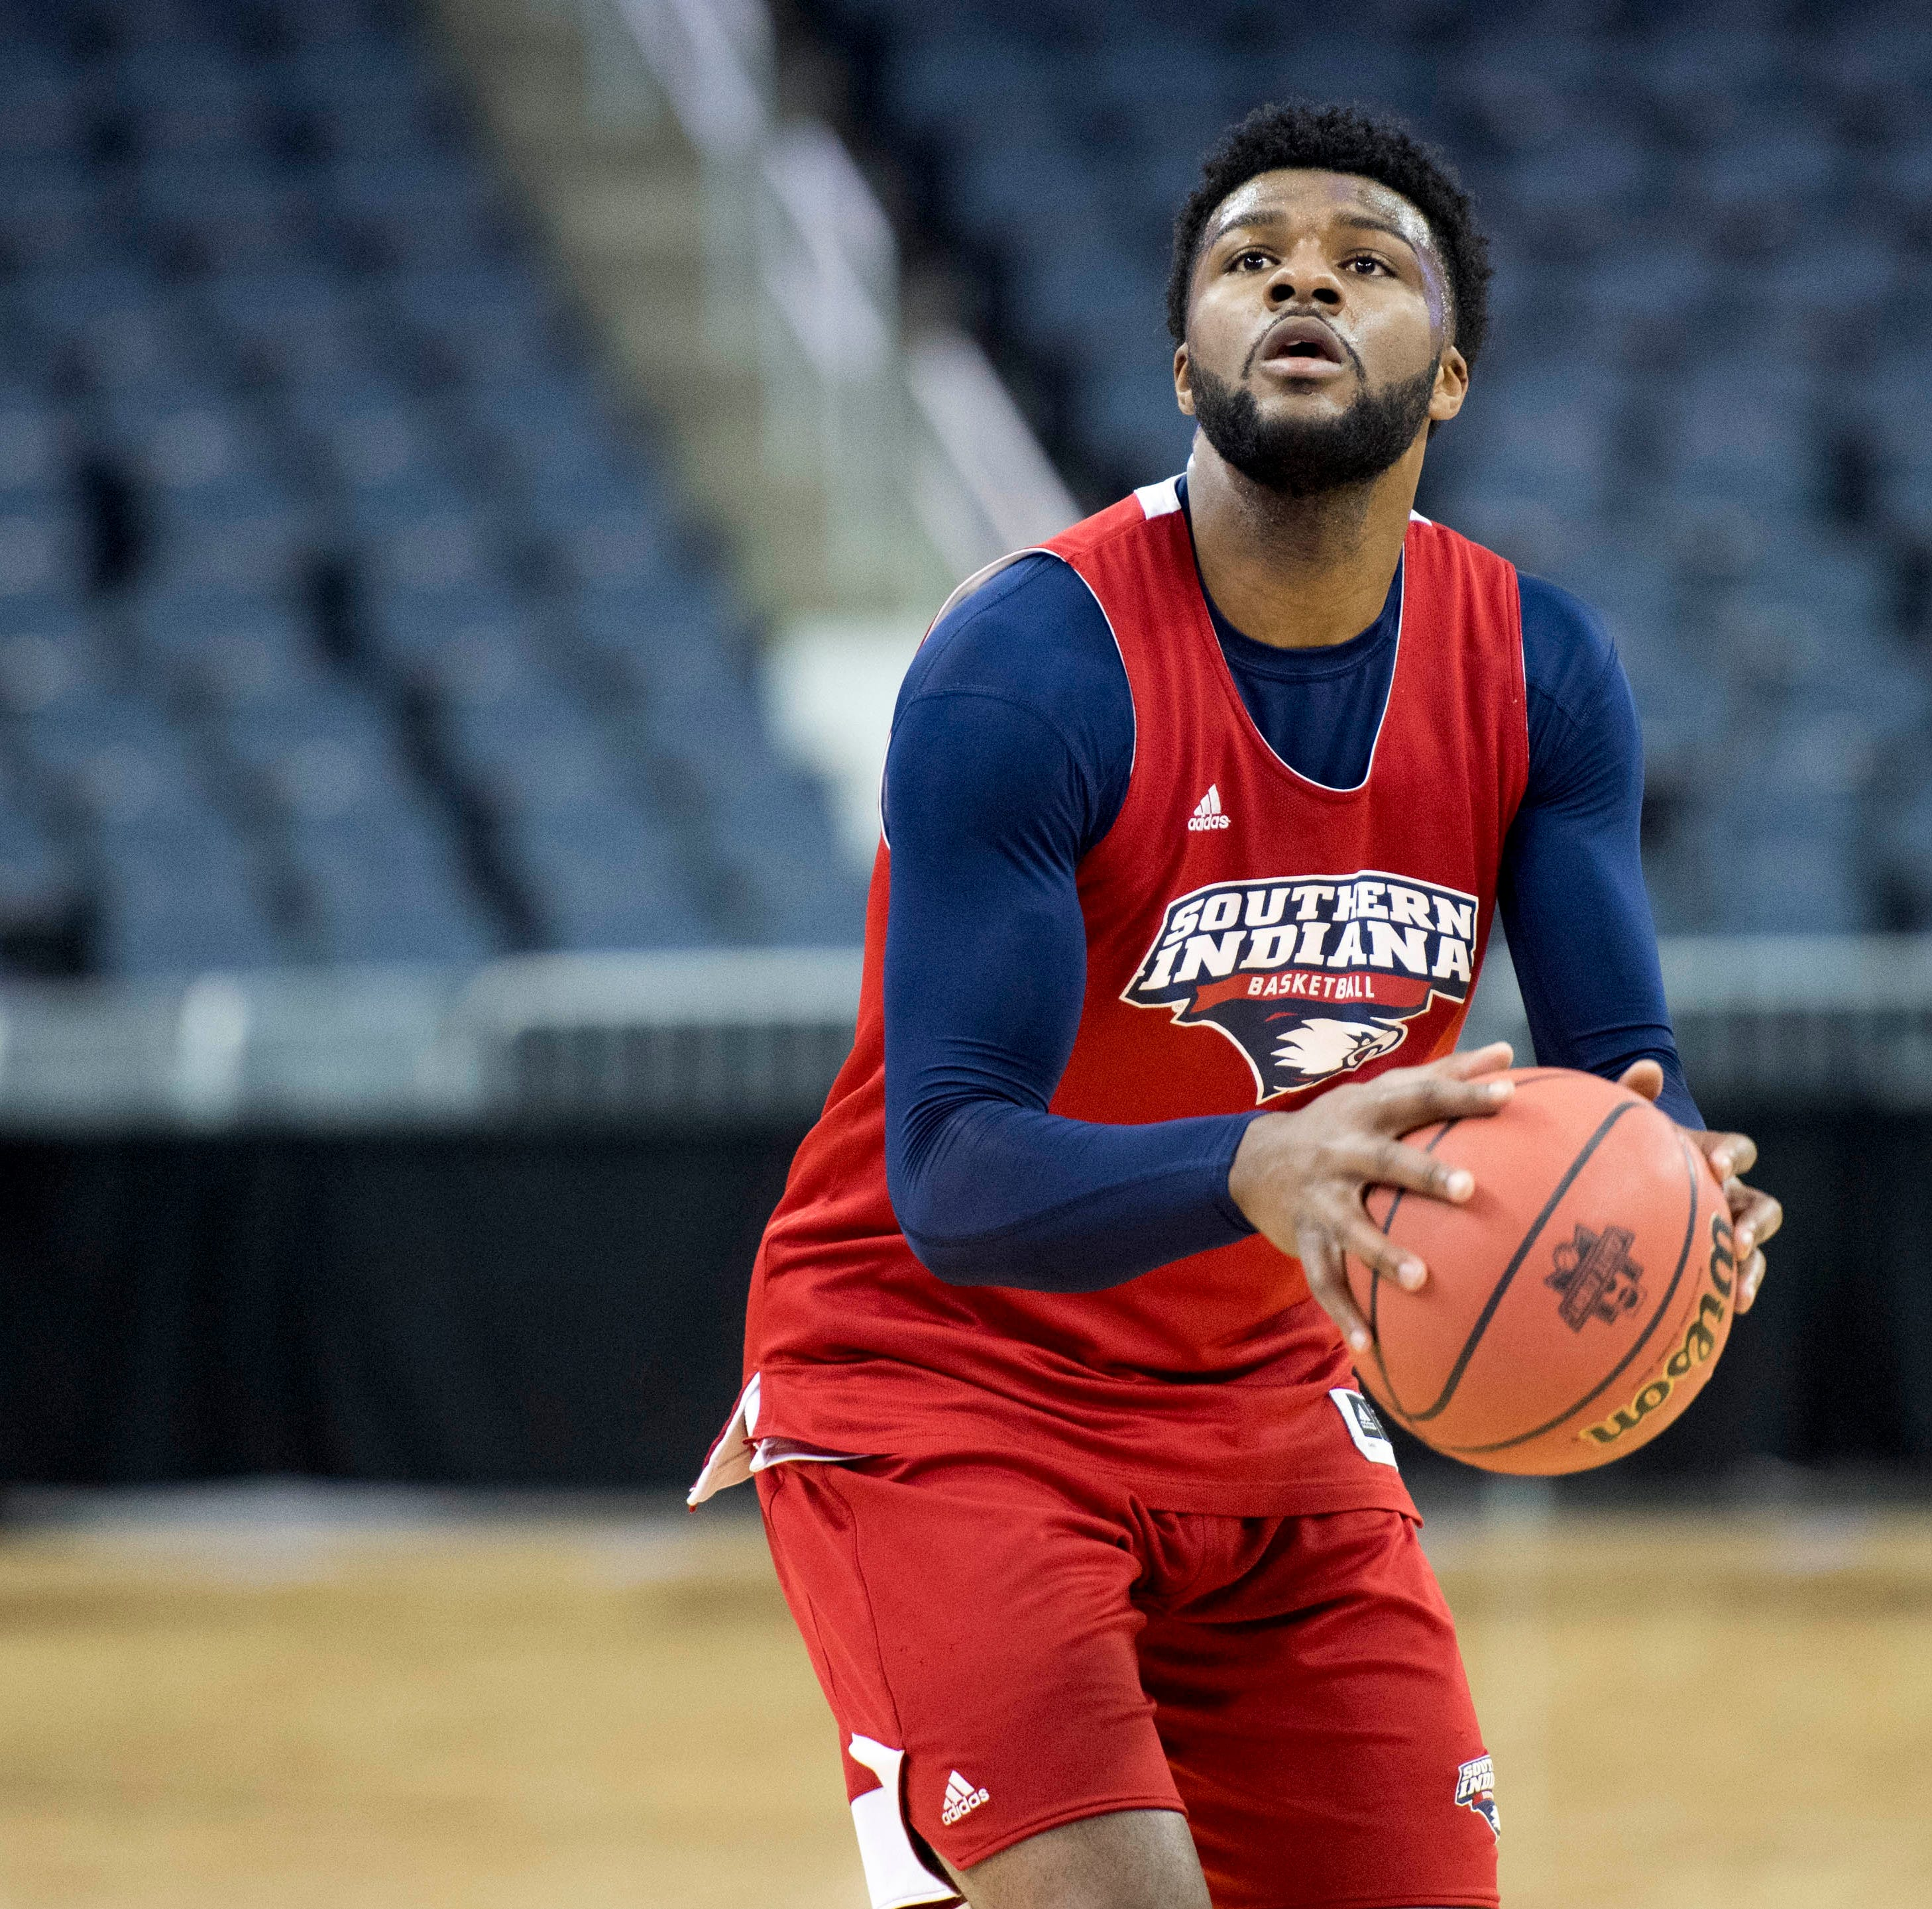 USI basketball ready to give hometown fans a show in Division II Elite Eight